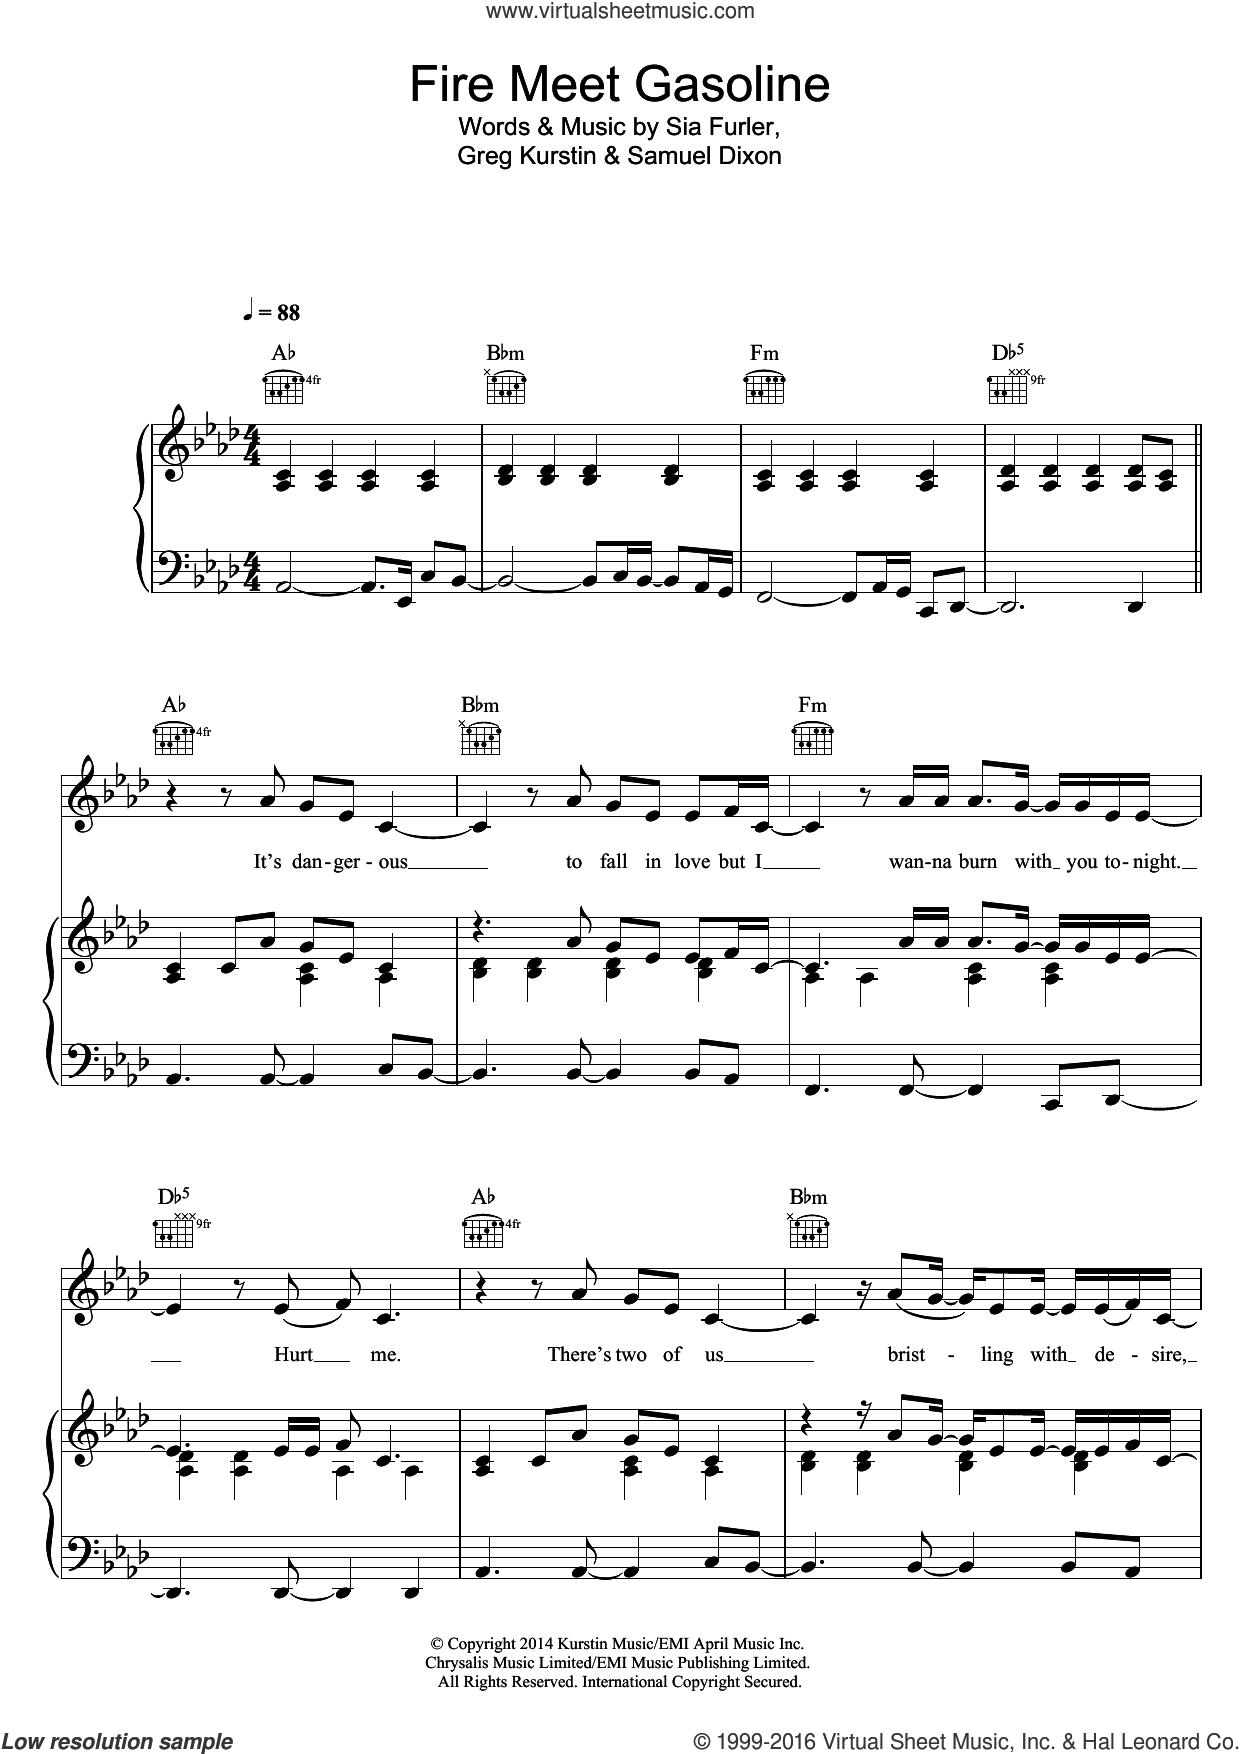 Fire Meet Gasoline sheet music for voice, piano or guitar by Sia. Score Image Preview.